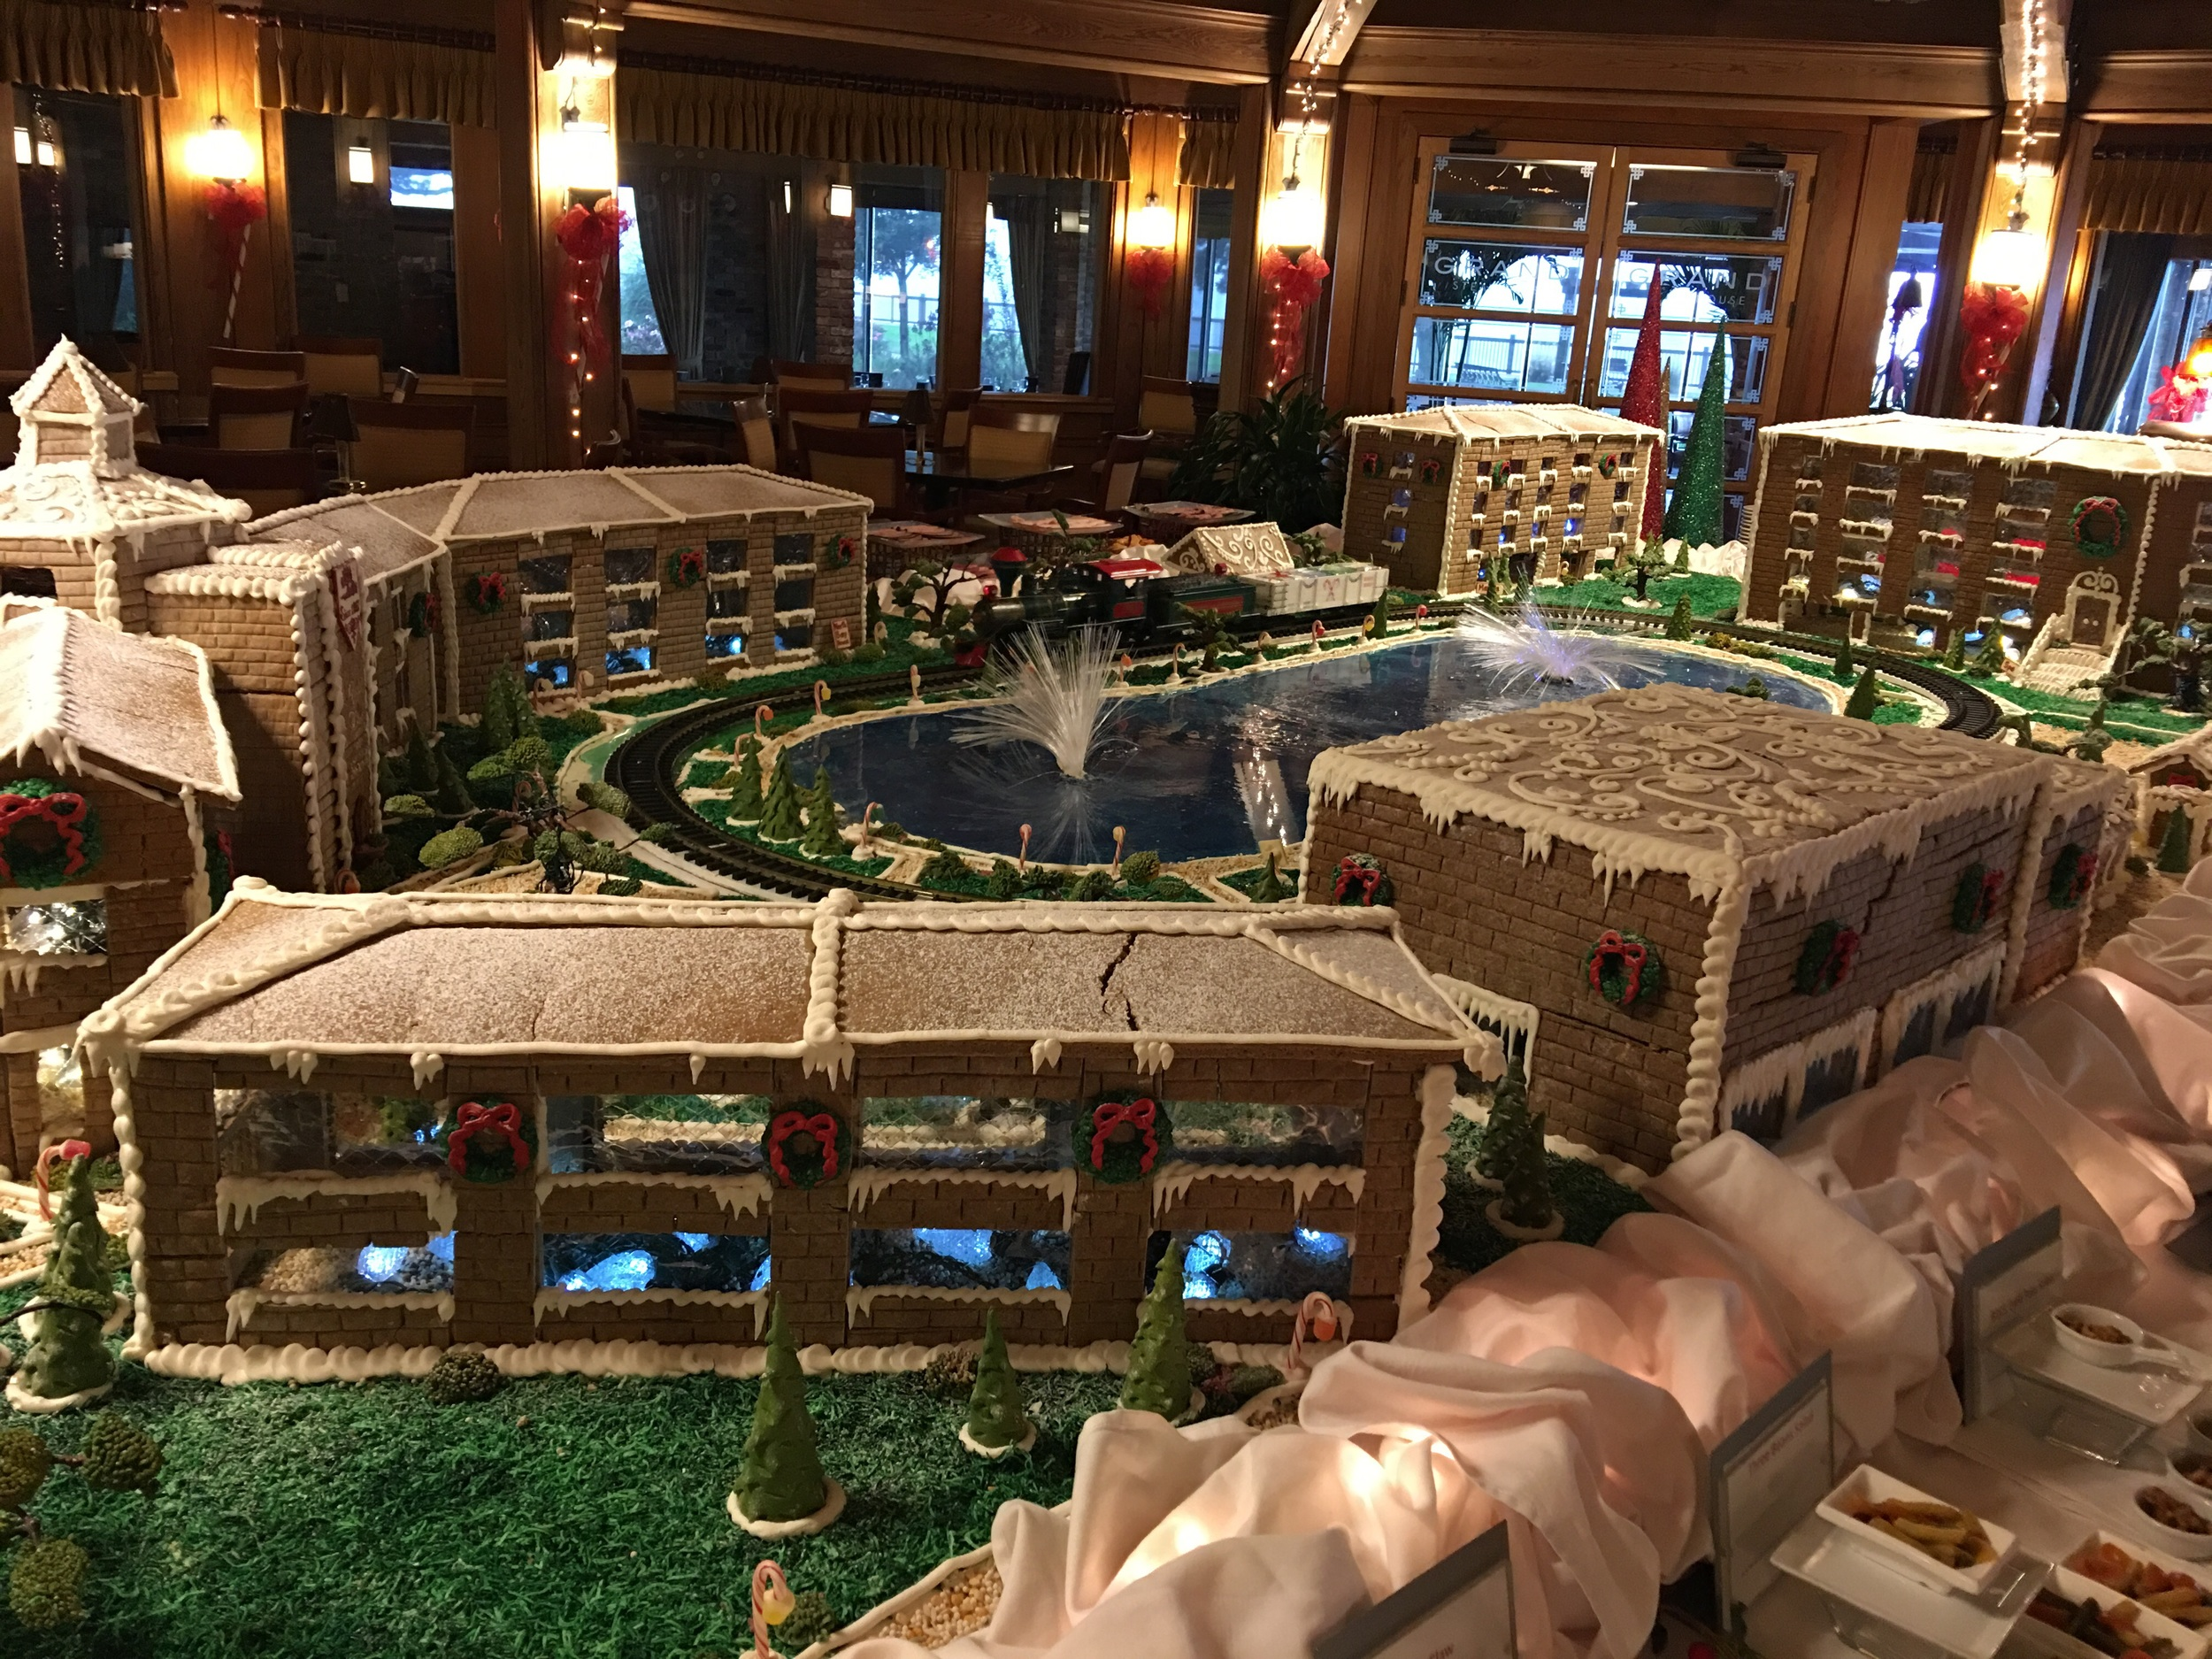 The hotel complex in gingerbread